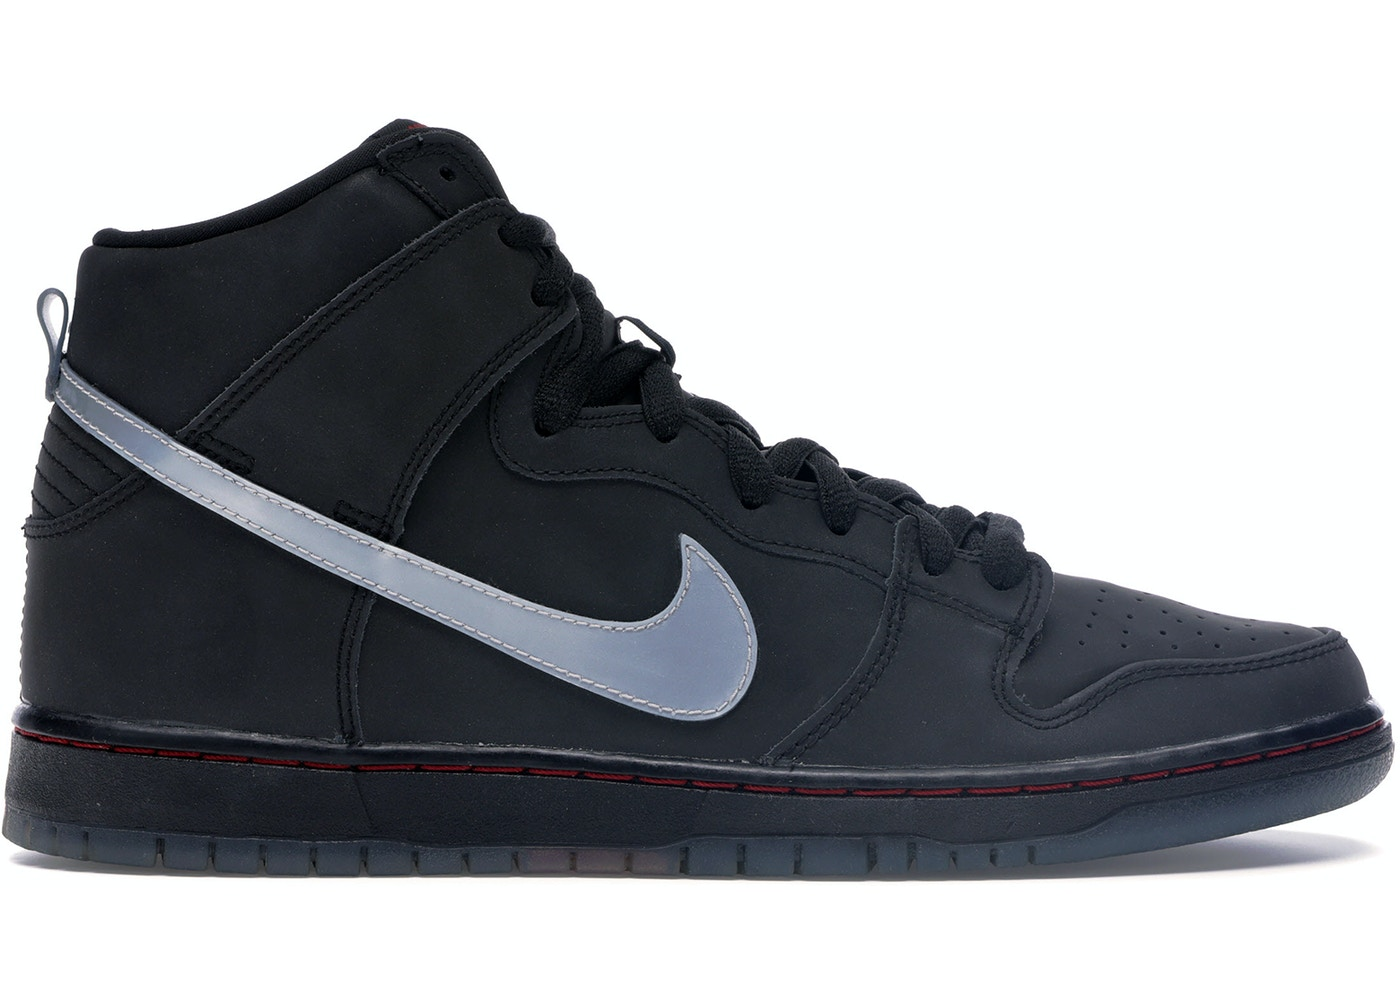 new product 105fb 2a44f Nike Dunk SB High Raging Bull 3M